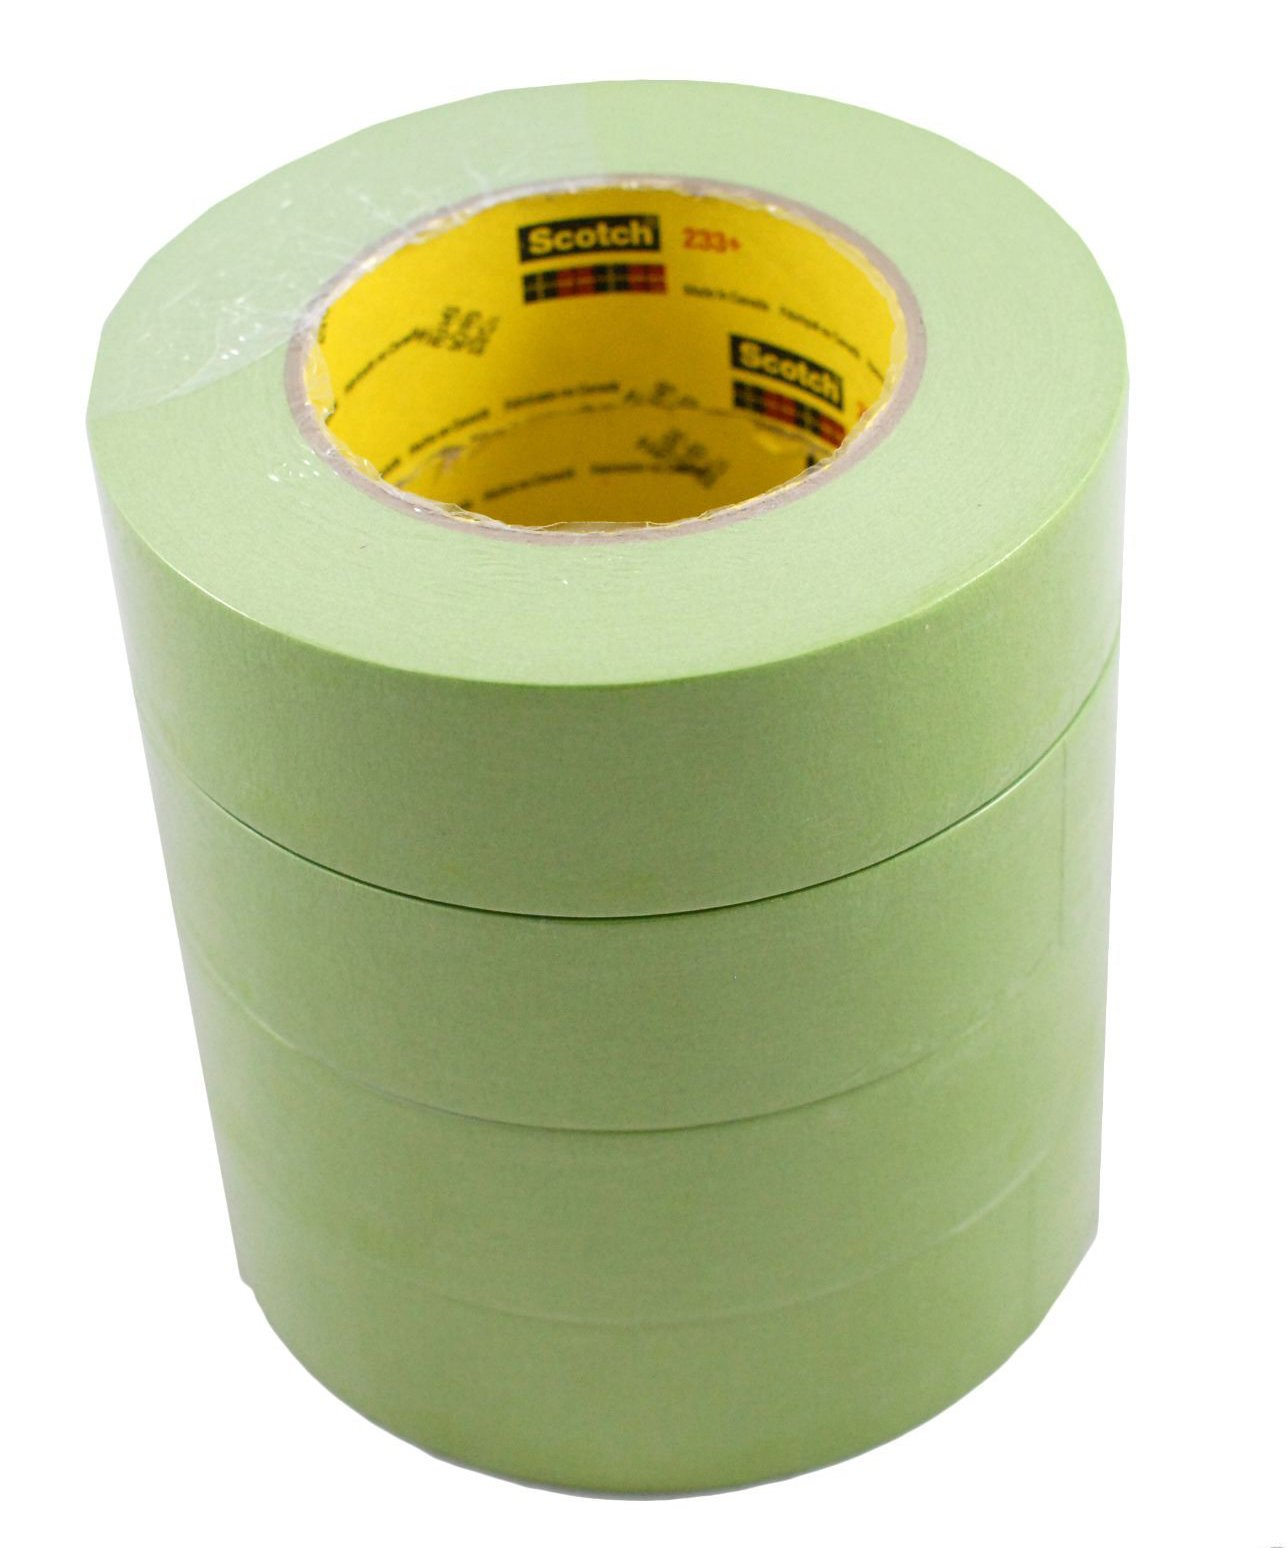 3M 1-1/2'' 233+ Green AUTO Masking Tape-4 Roll-Paint CAR by 3M